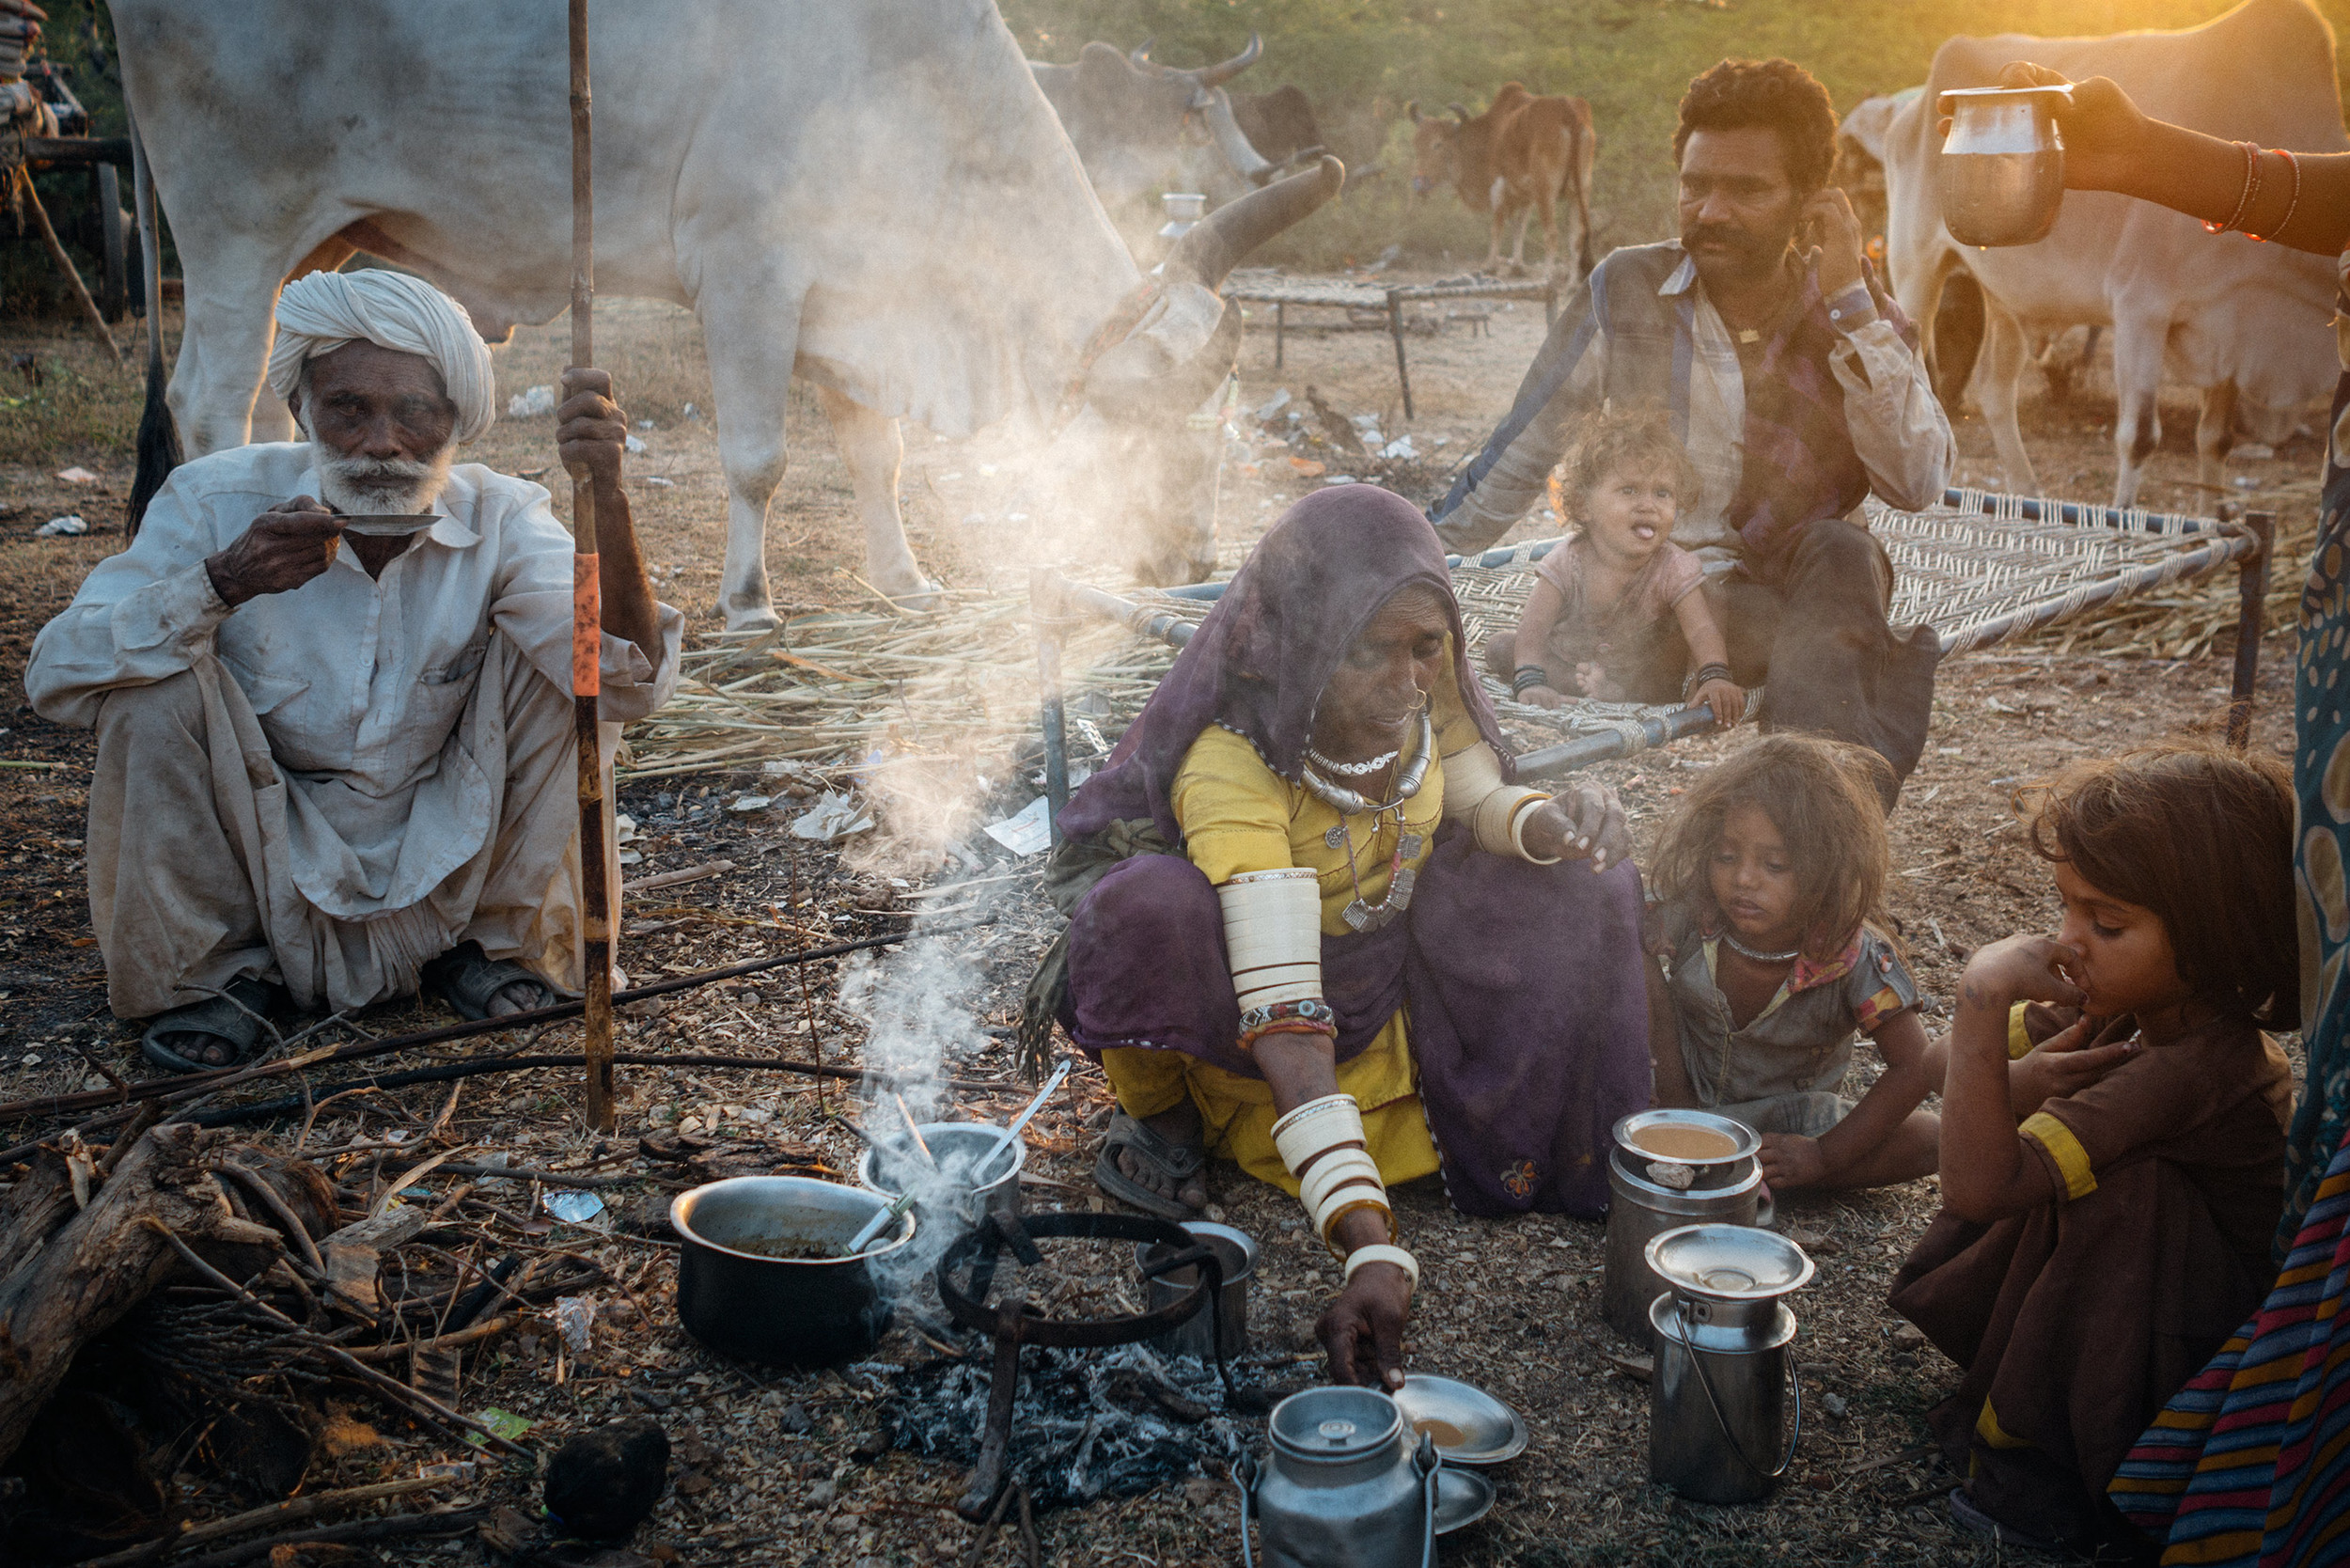 Nomads preparing and drinking tea